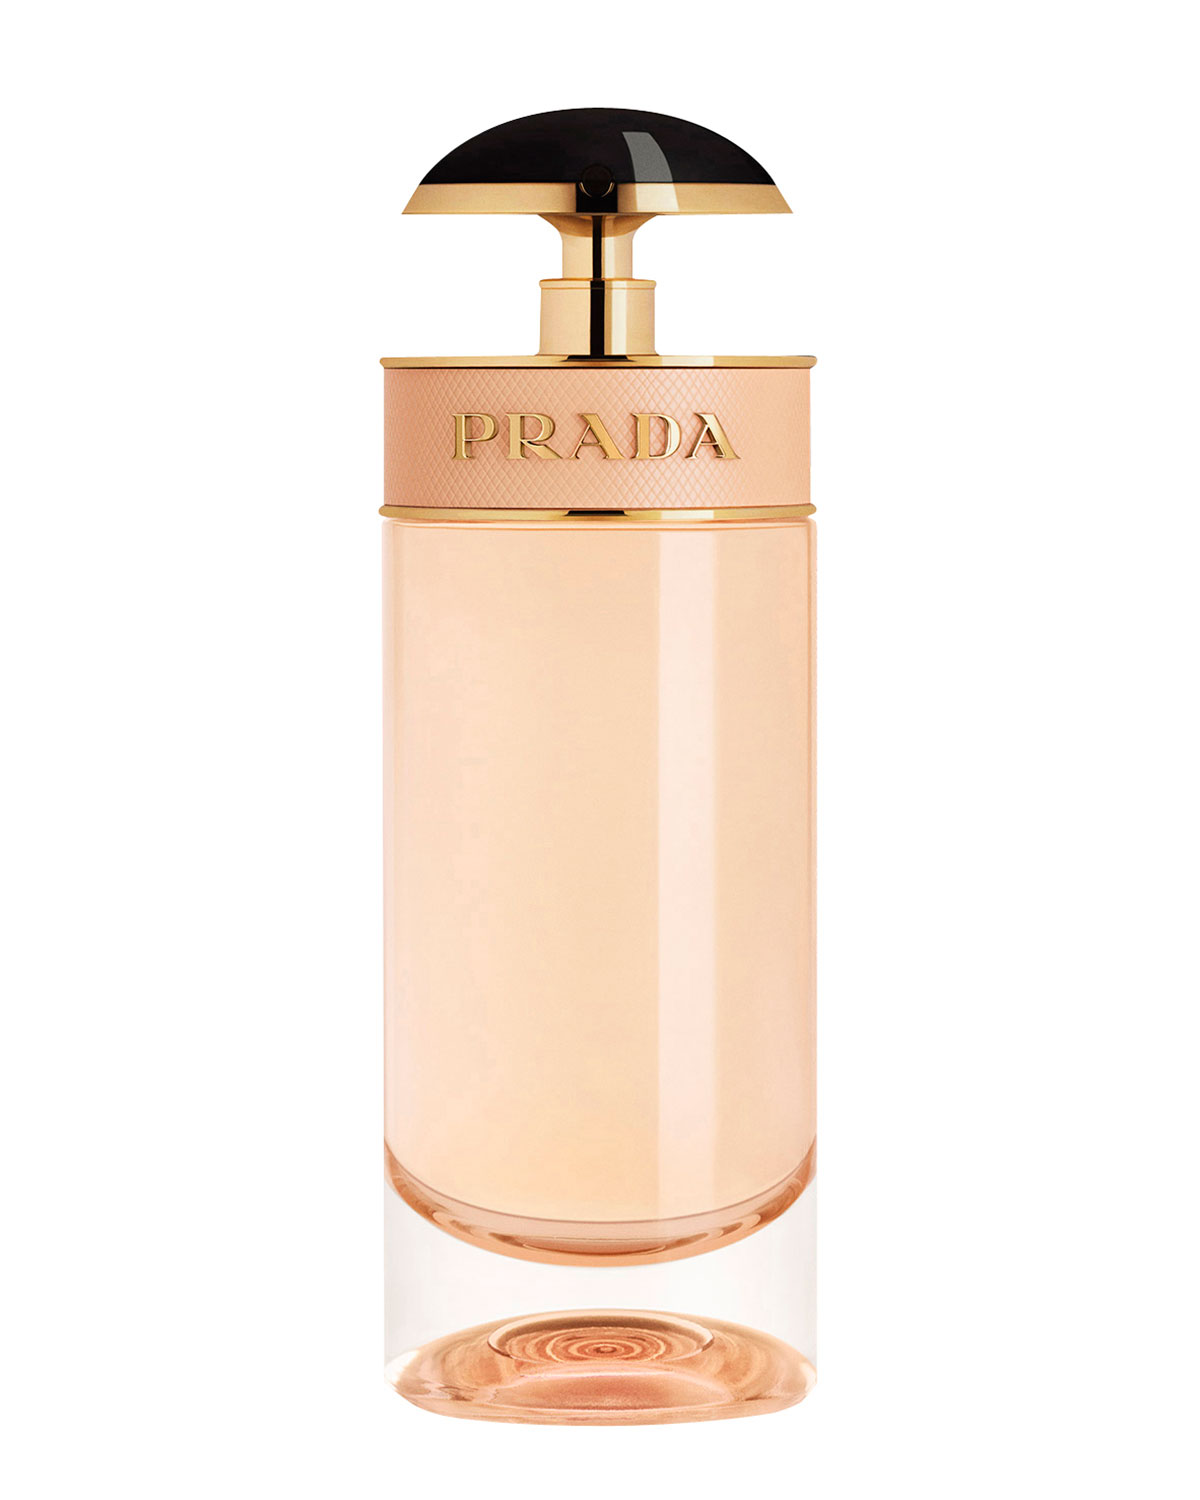 Prada Candy L'Eau Eau De Toilette, 1.7 oz./ 50 mL